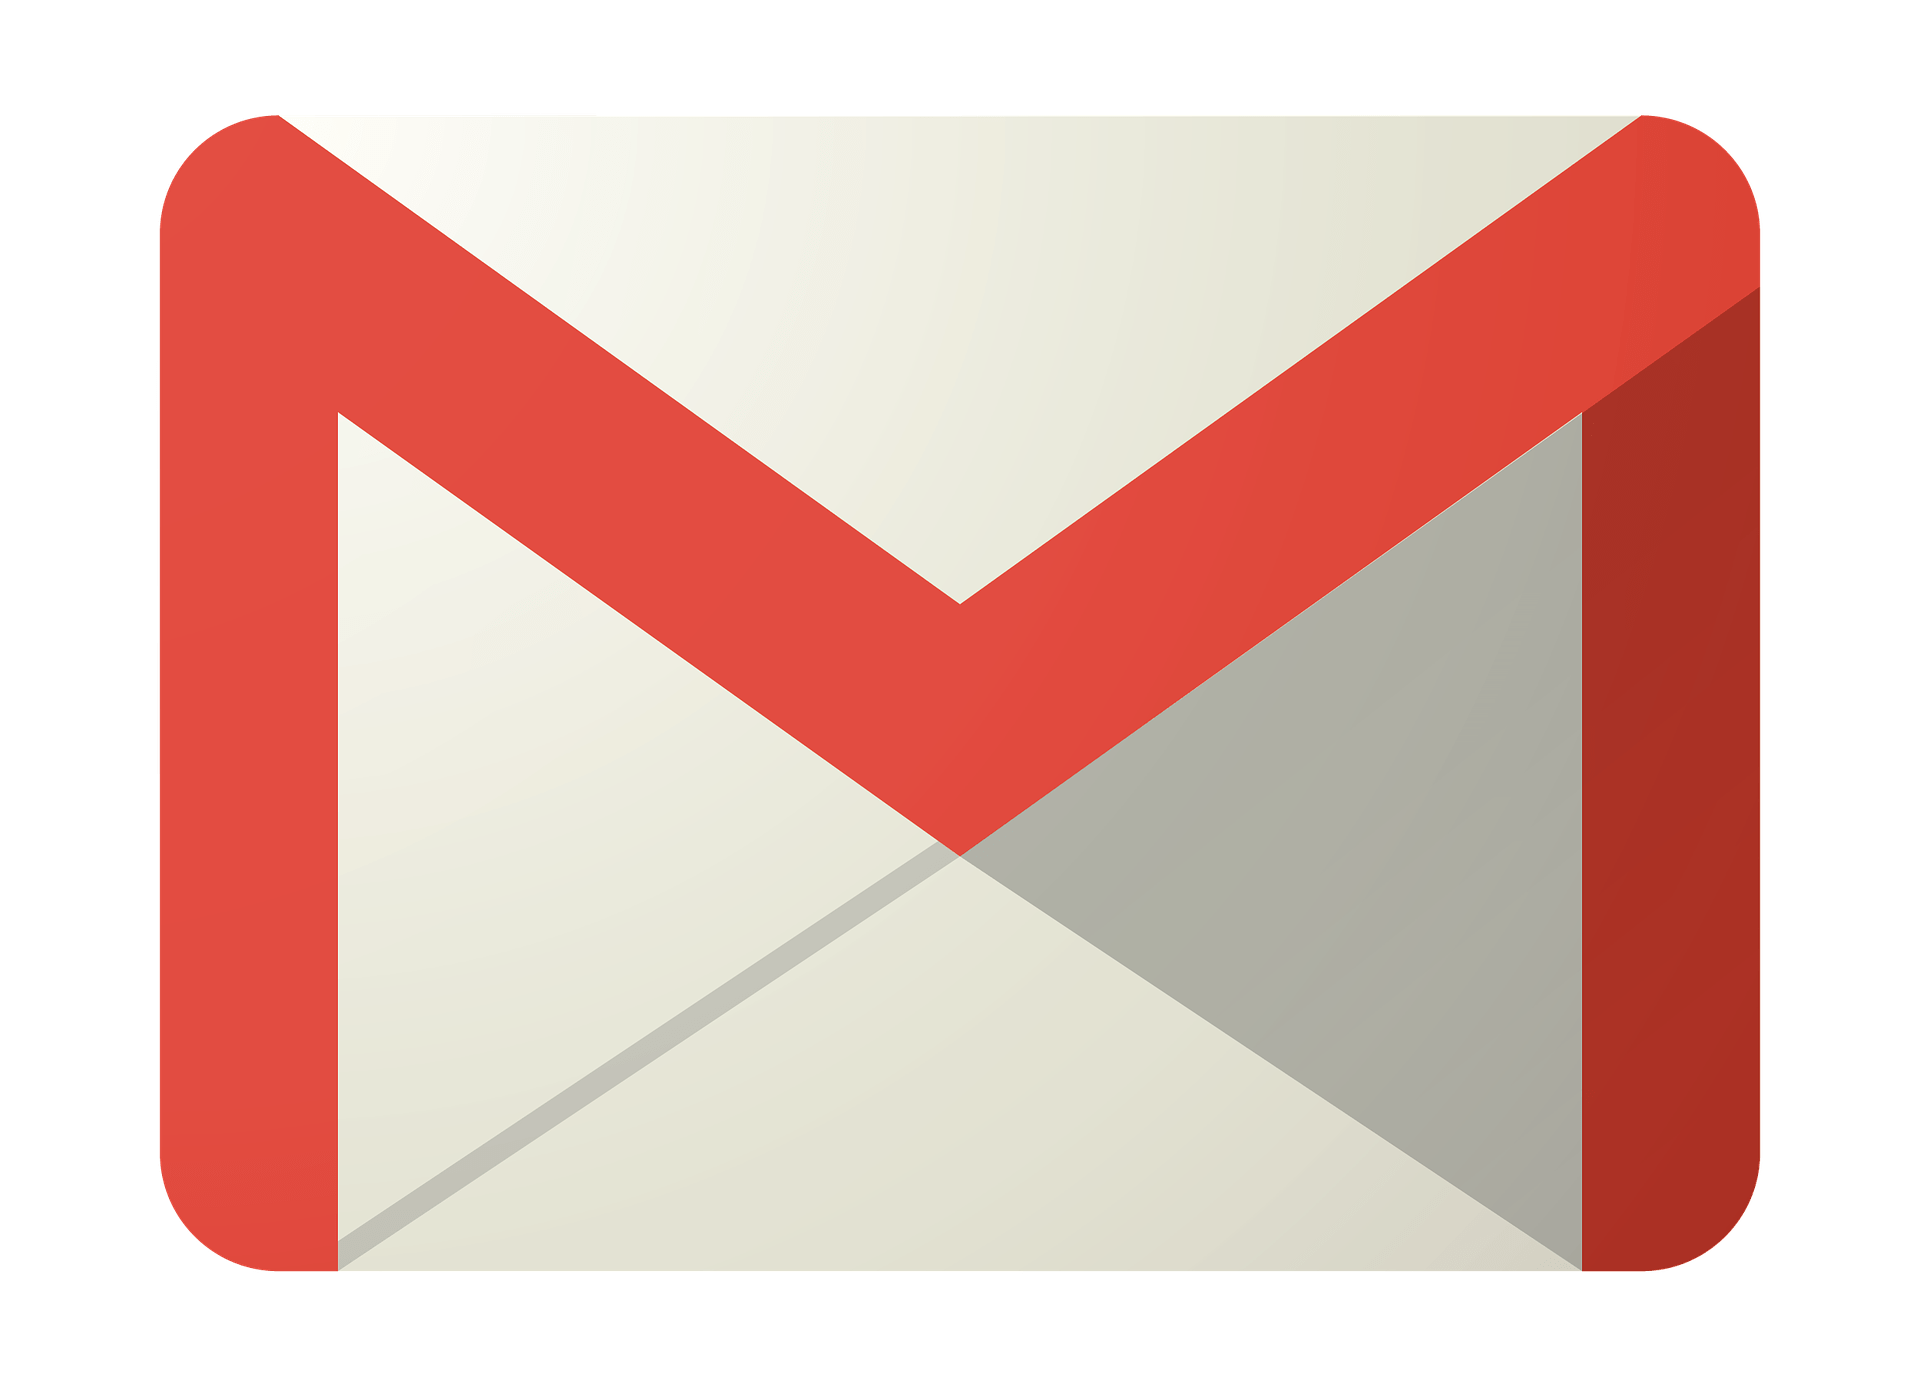 How was Gmail developed?